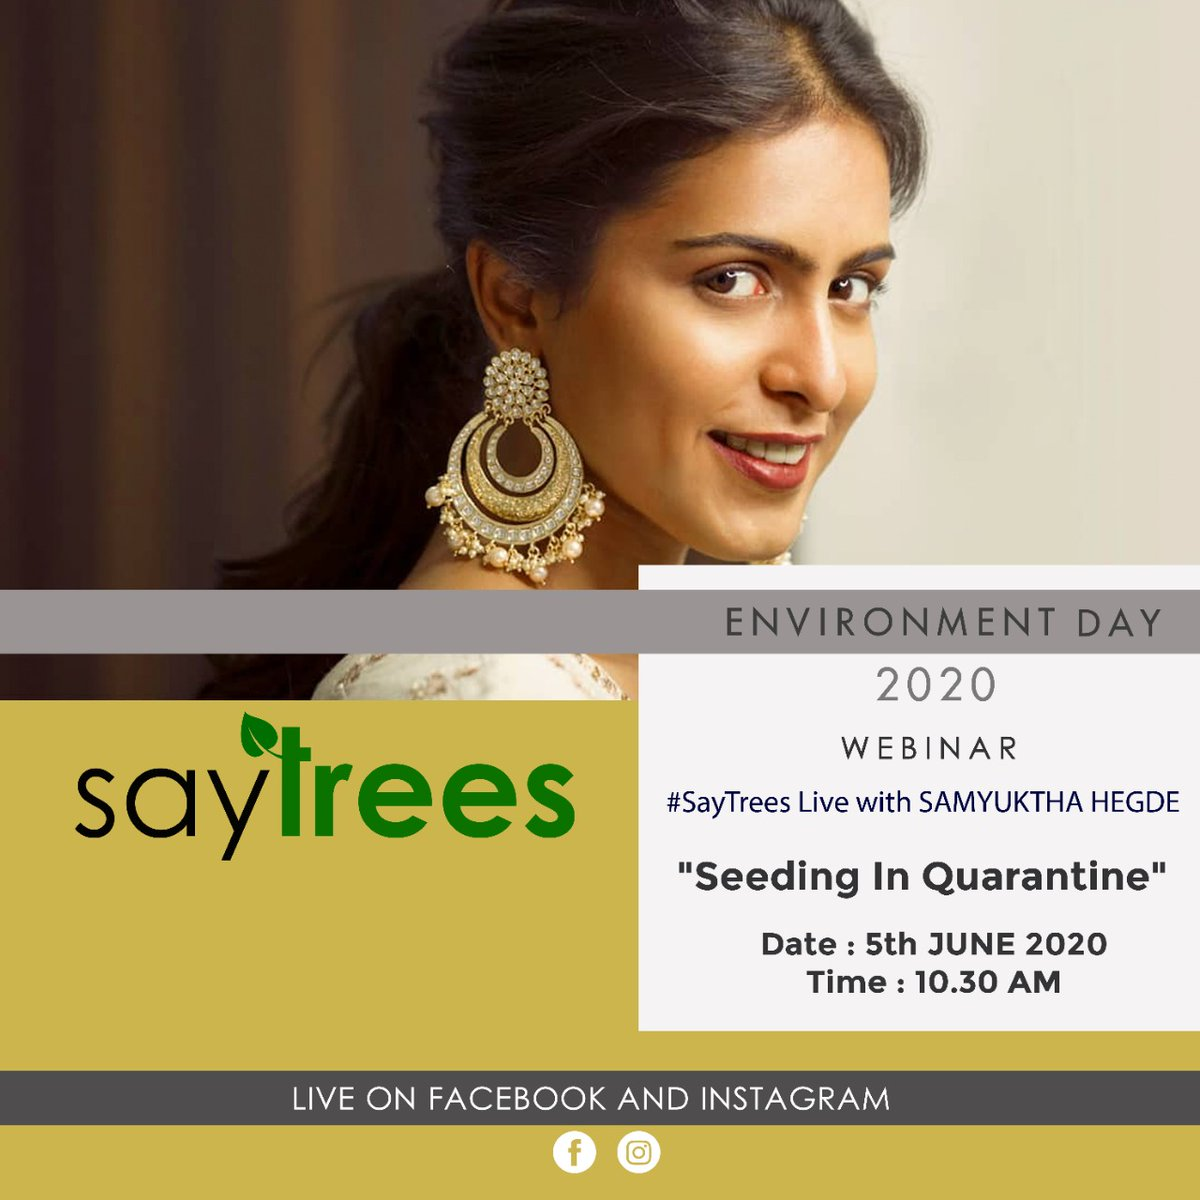 Catch @SamyukthaHegde live on #WorldEnvironmentDay2020 Showing how to utilise this time by sowing a seed in biodegradable pots and nurturing them into saplings Join us in this movement #SeedingInQuarantine this June 5 at 10:30 am to increase the green cover & fight climate change https://t.co/VxqJXiphUN